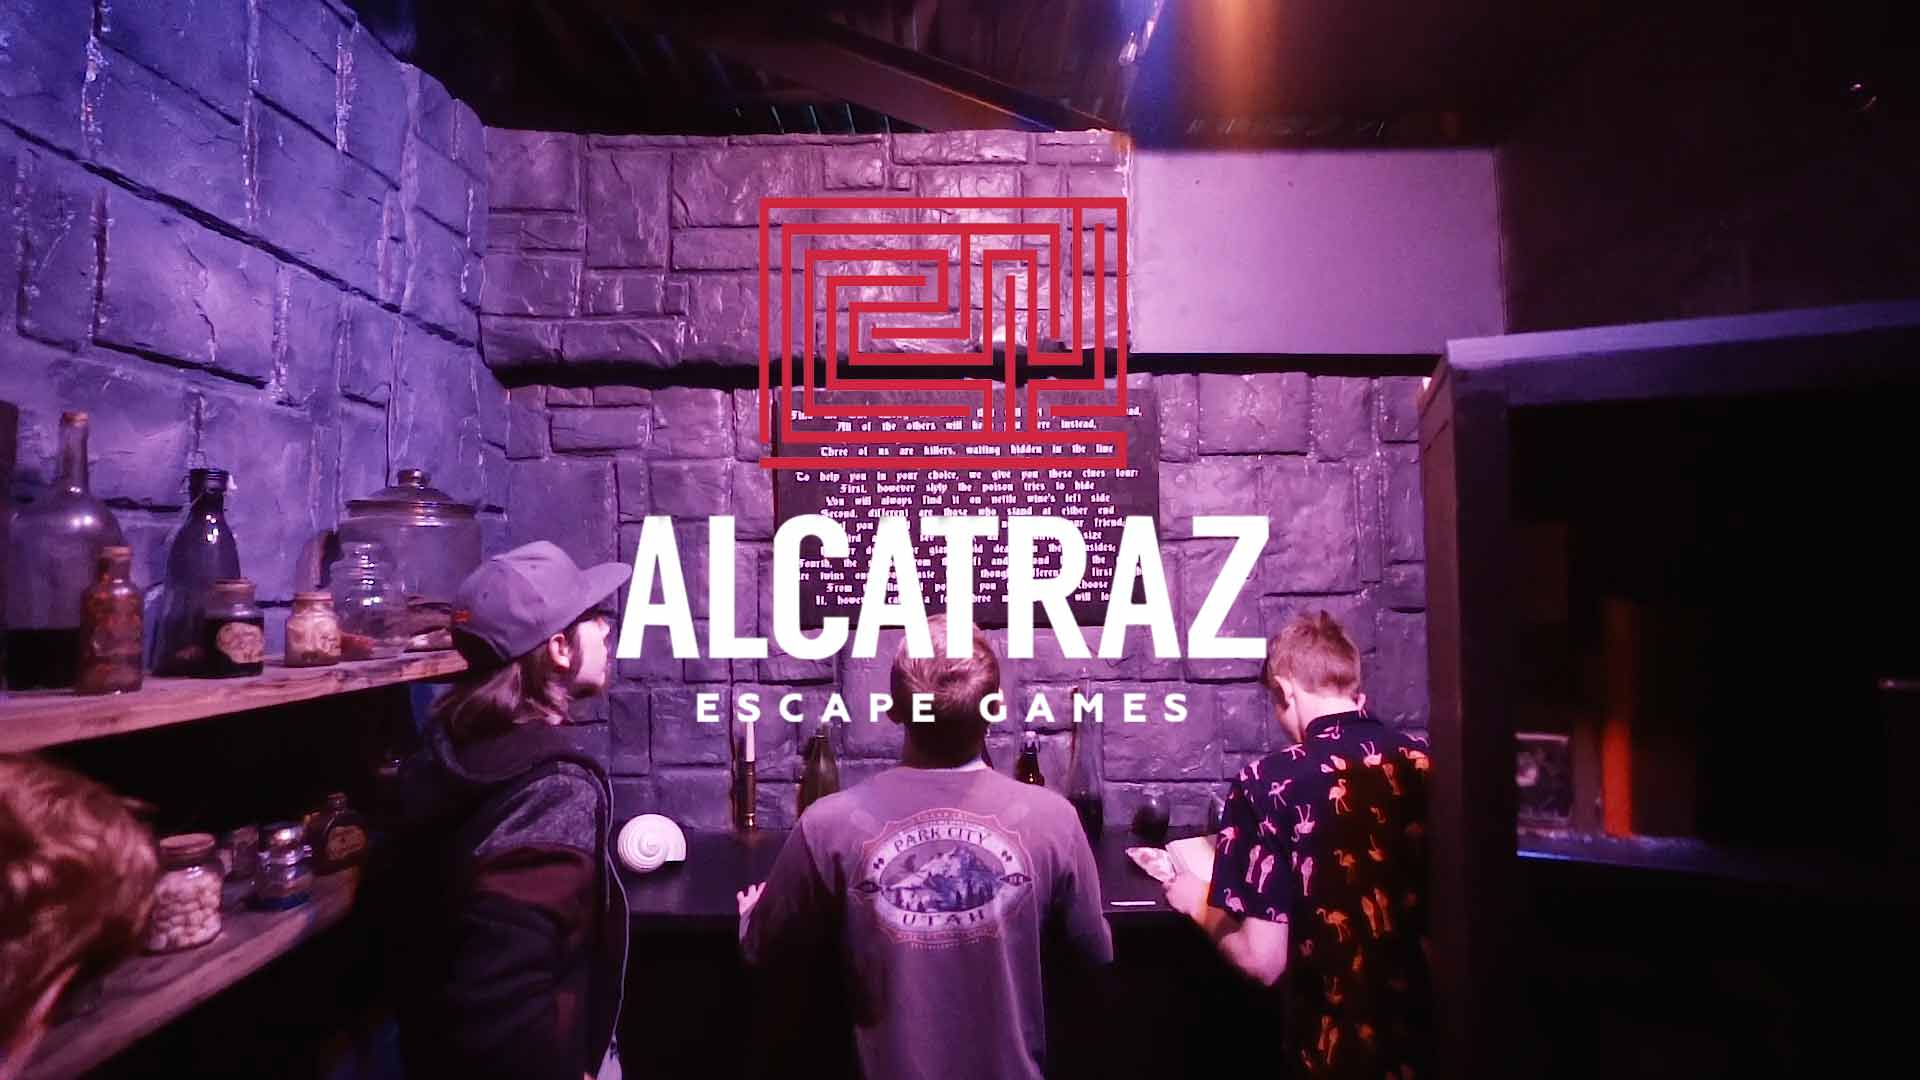 Alcatraz Escape Games - Alcatraz Escape Games delivers an immersive, cinematic experience through detailed set design, multi-dimensional storytelling and live acting. Alcatraz is Utah's #1 escape room destination for private events.Learn more at Alcatrazescapegames.com